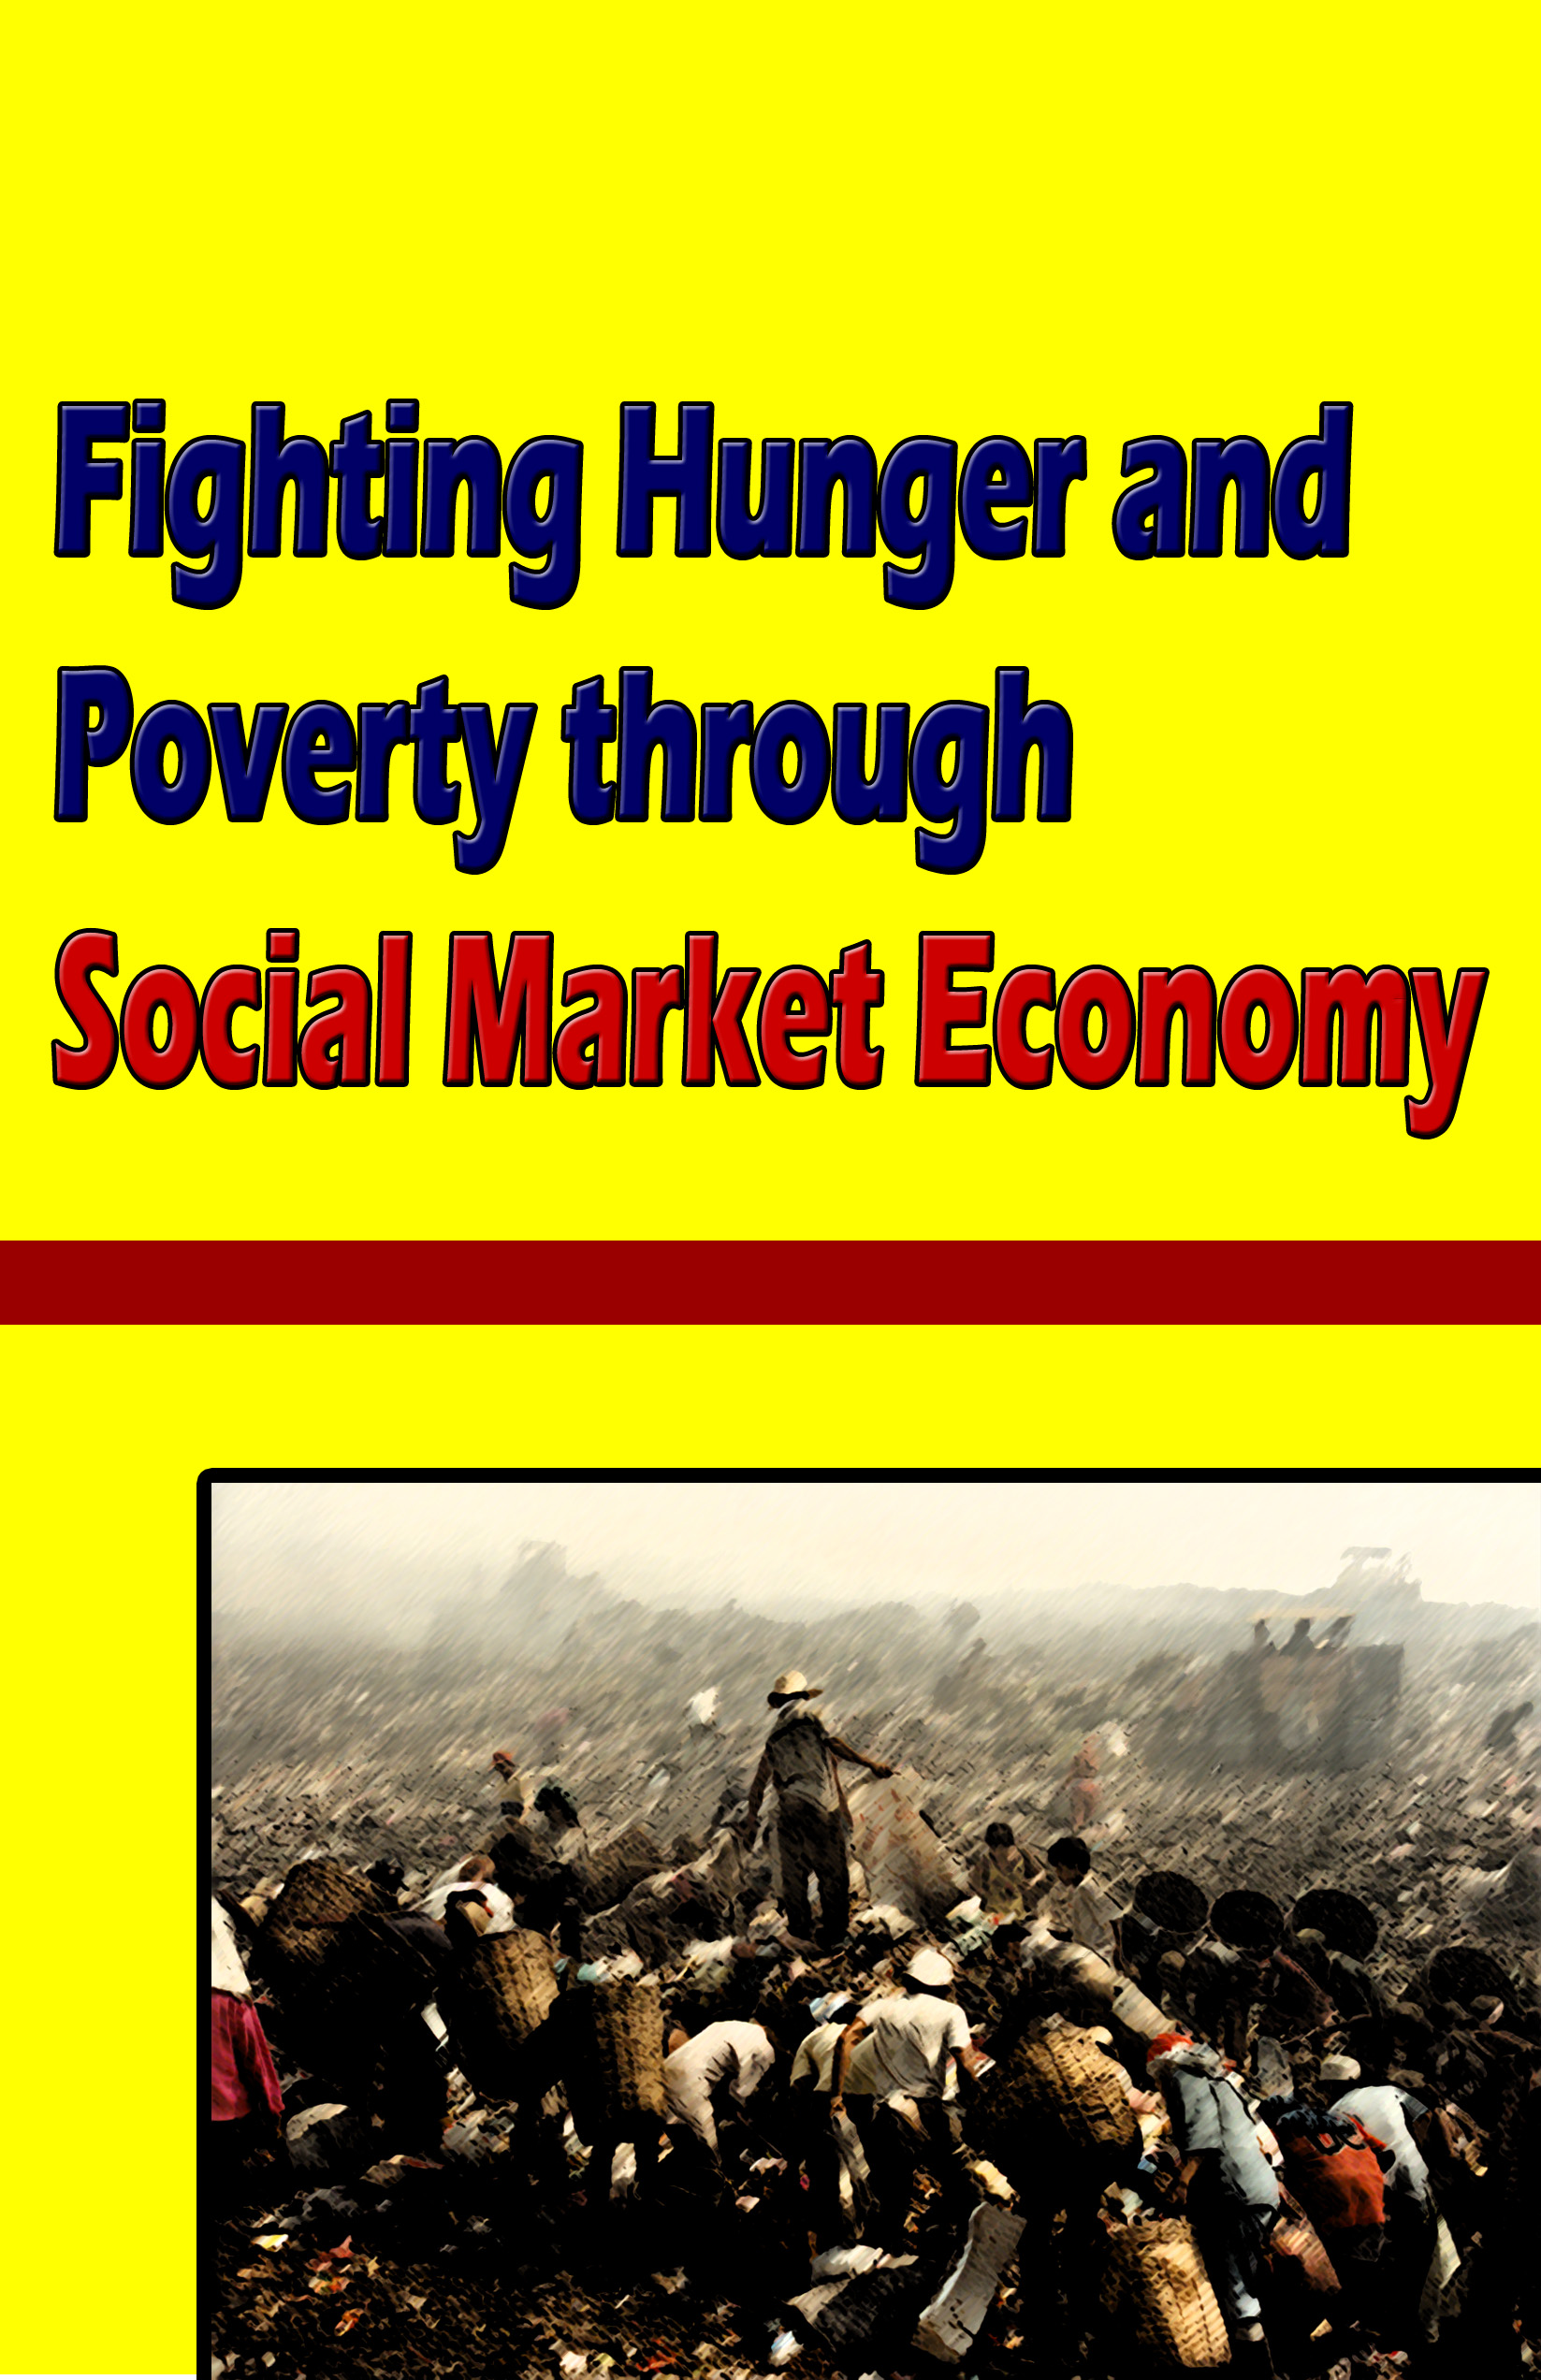 Fighting Hunger and Poverty through Social Market Economy